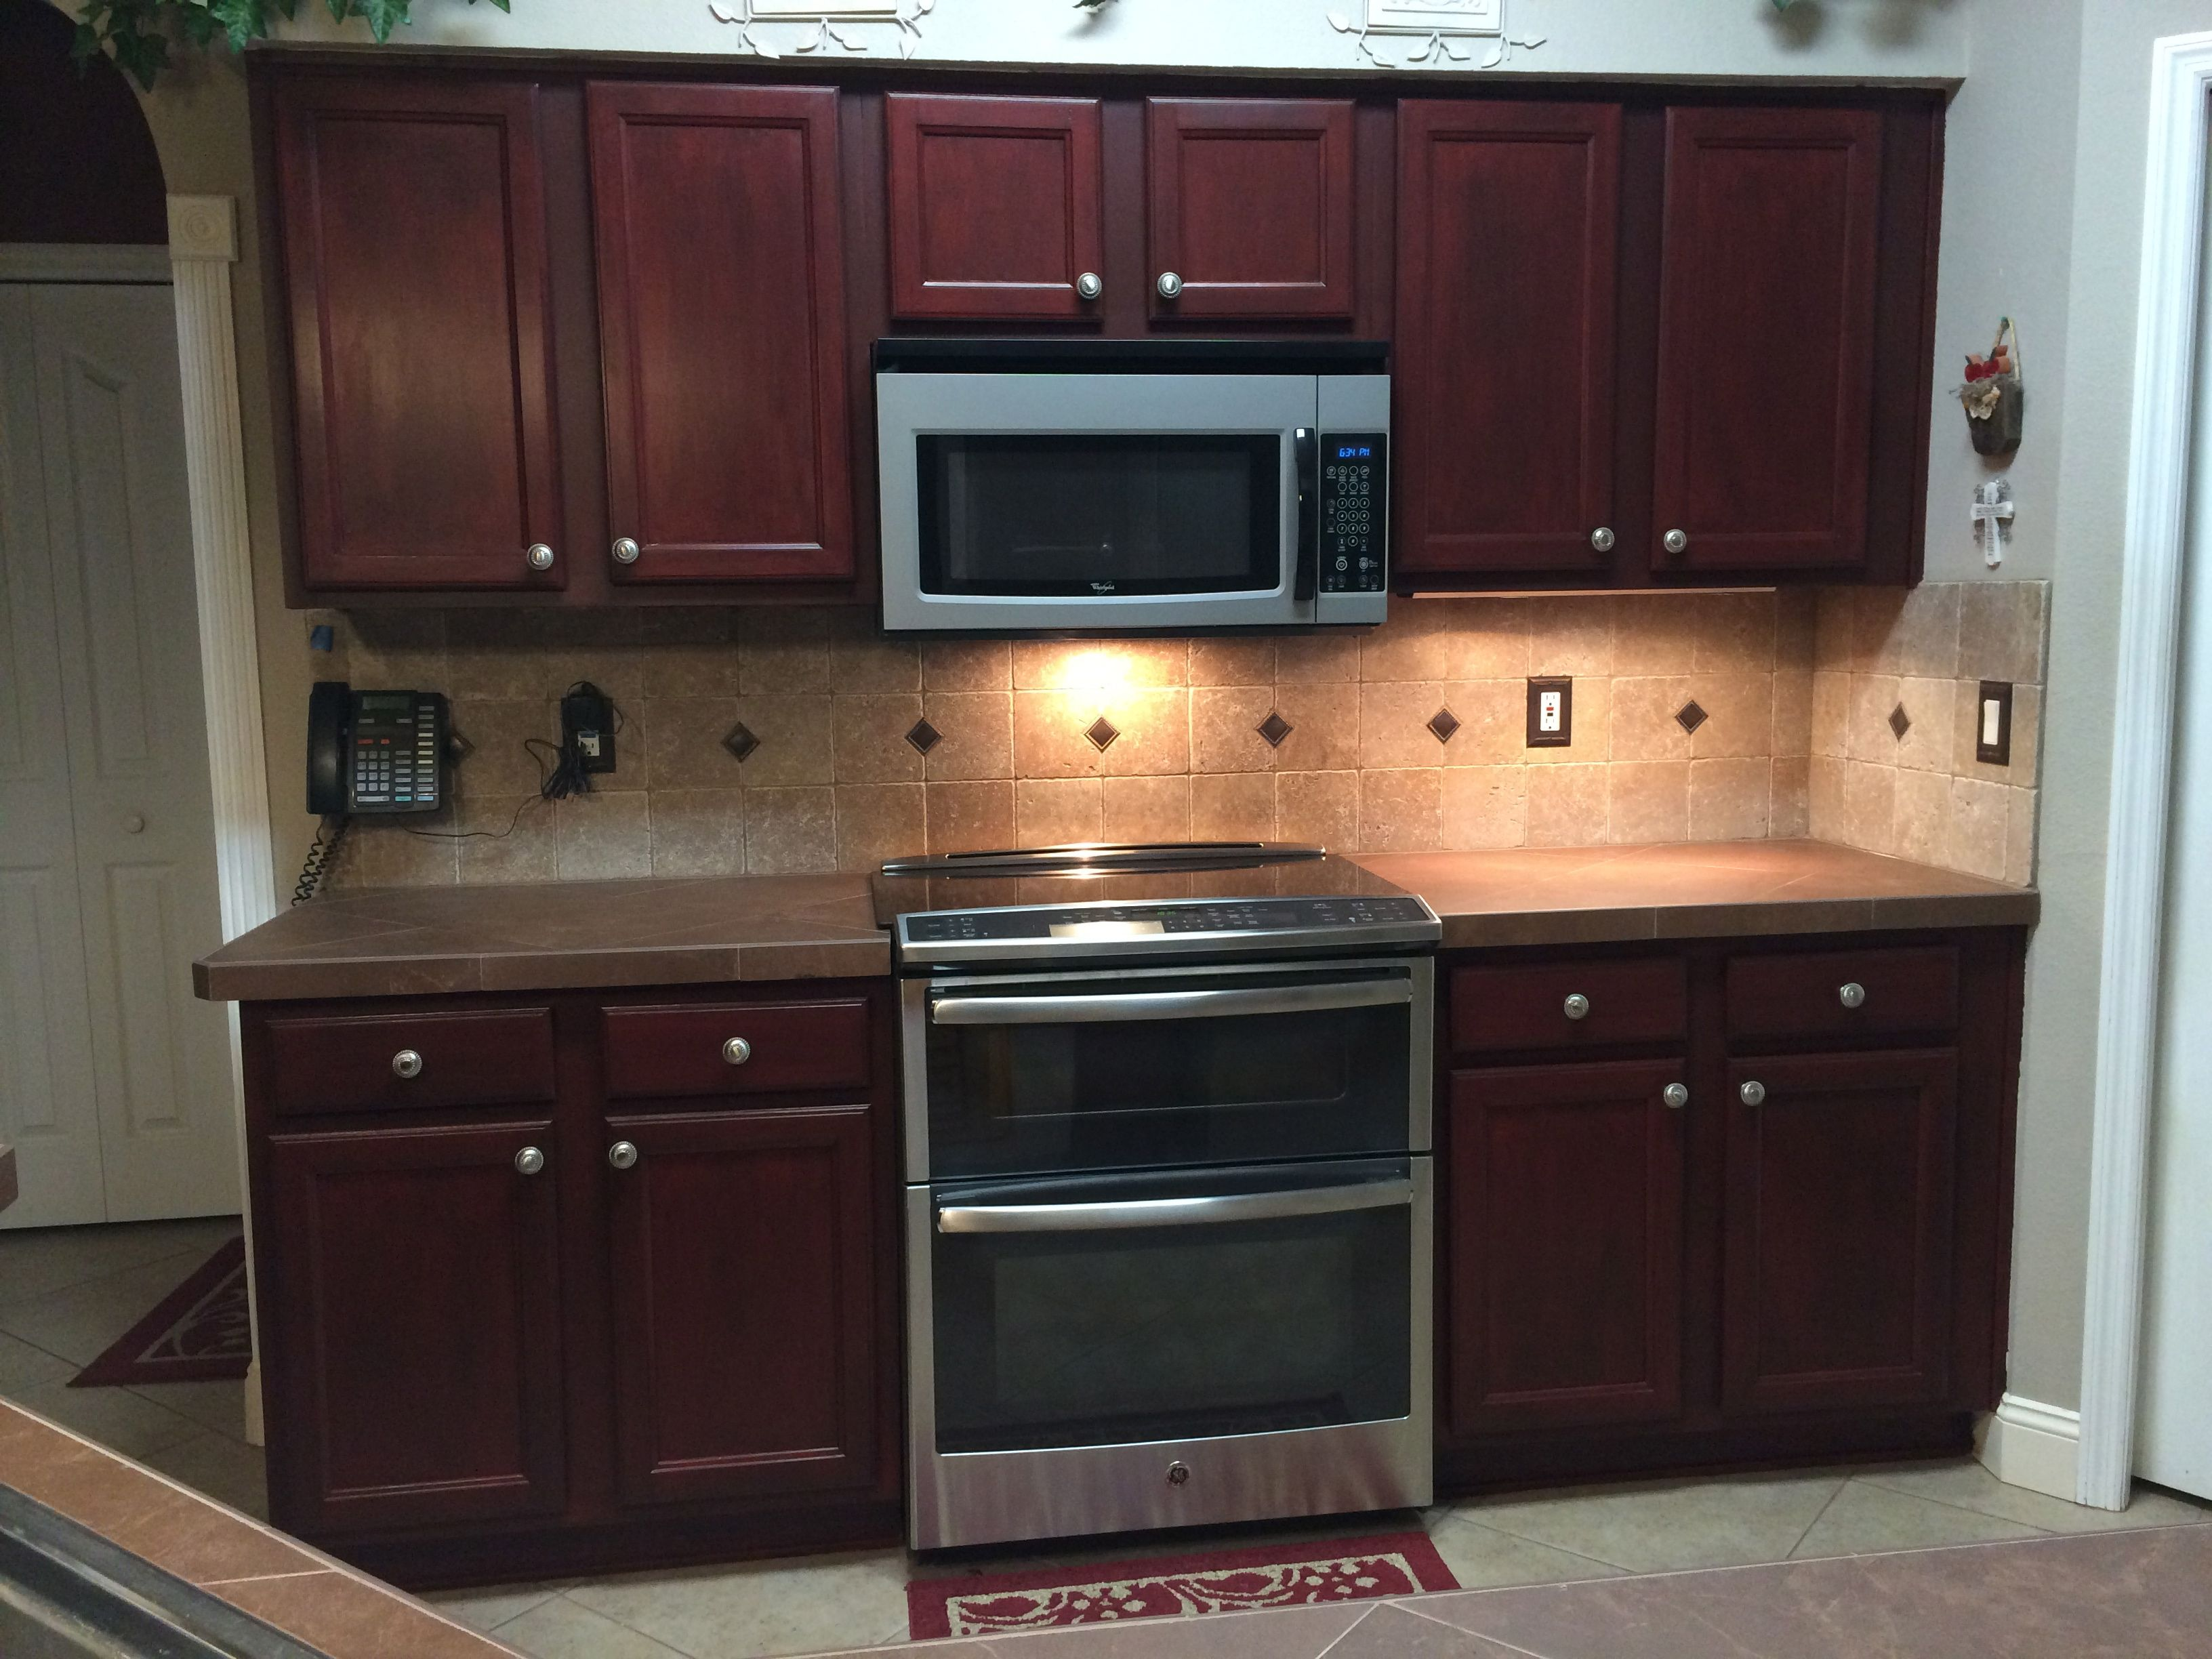 Superbe Rustoleum Cabinet Transformations In Cabernet With Glaze Finish, 2 Coats Of  Protective Top Coat (3 Around The Door Knobs For Extra Protection) Switches  And ...